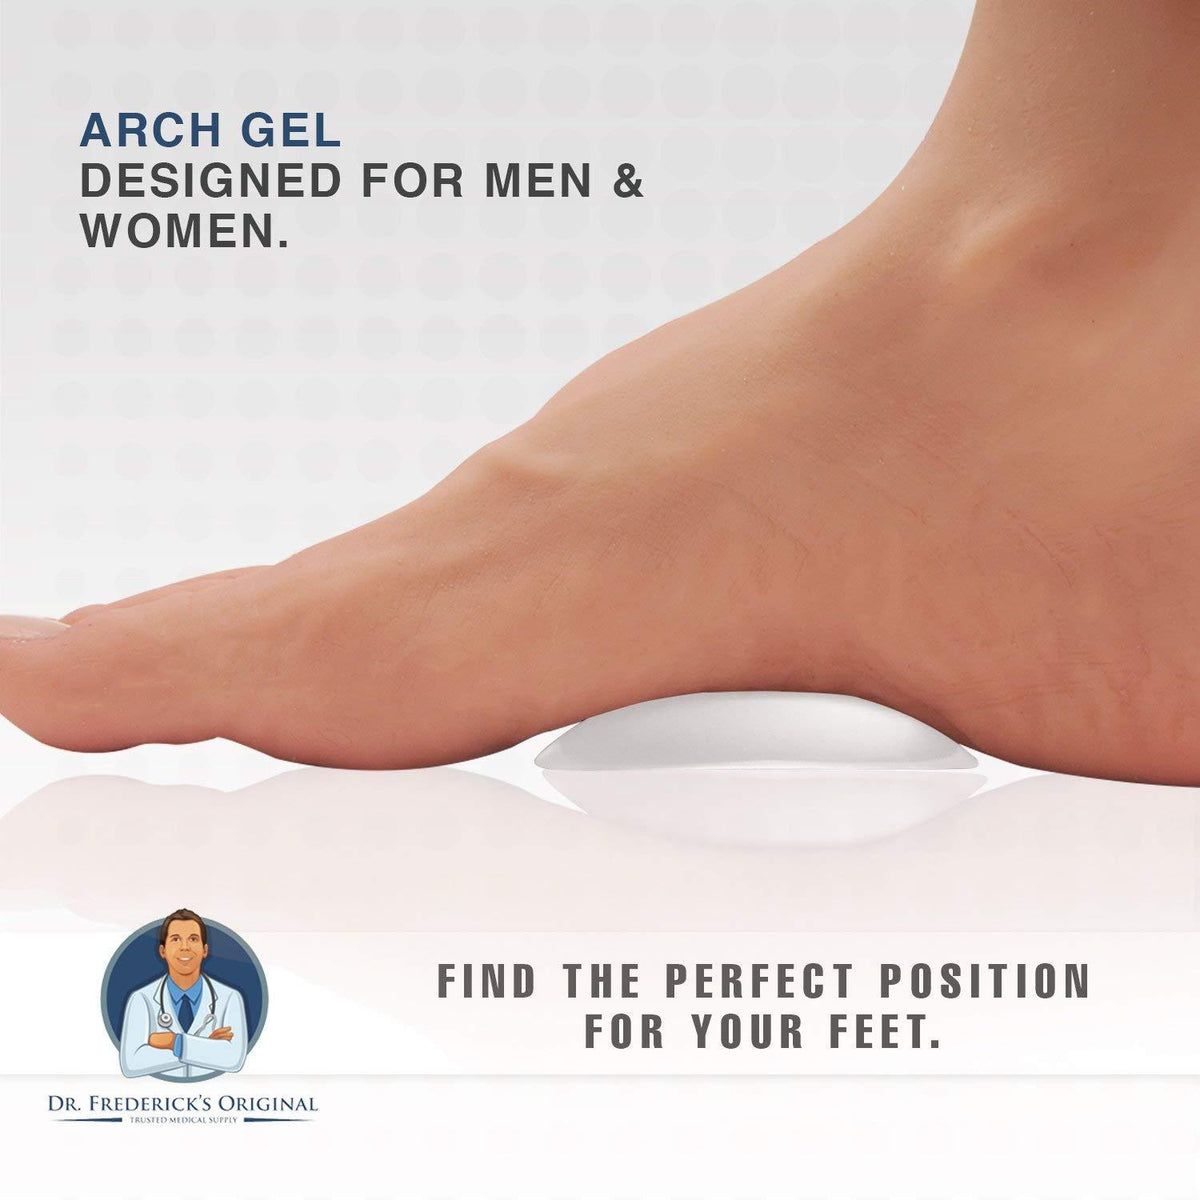 Dr. Frederick's Original Peel & Stick Arch Support Gel Pads -- 4 Pieces - for Arch Pain and High Arches Foot Pain Dr. Frederick's Original